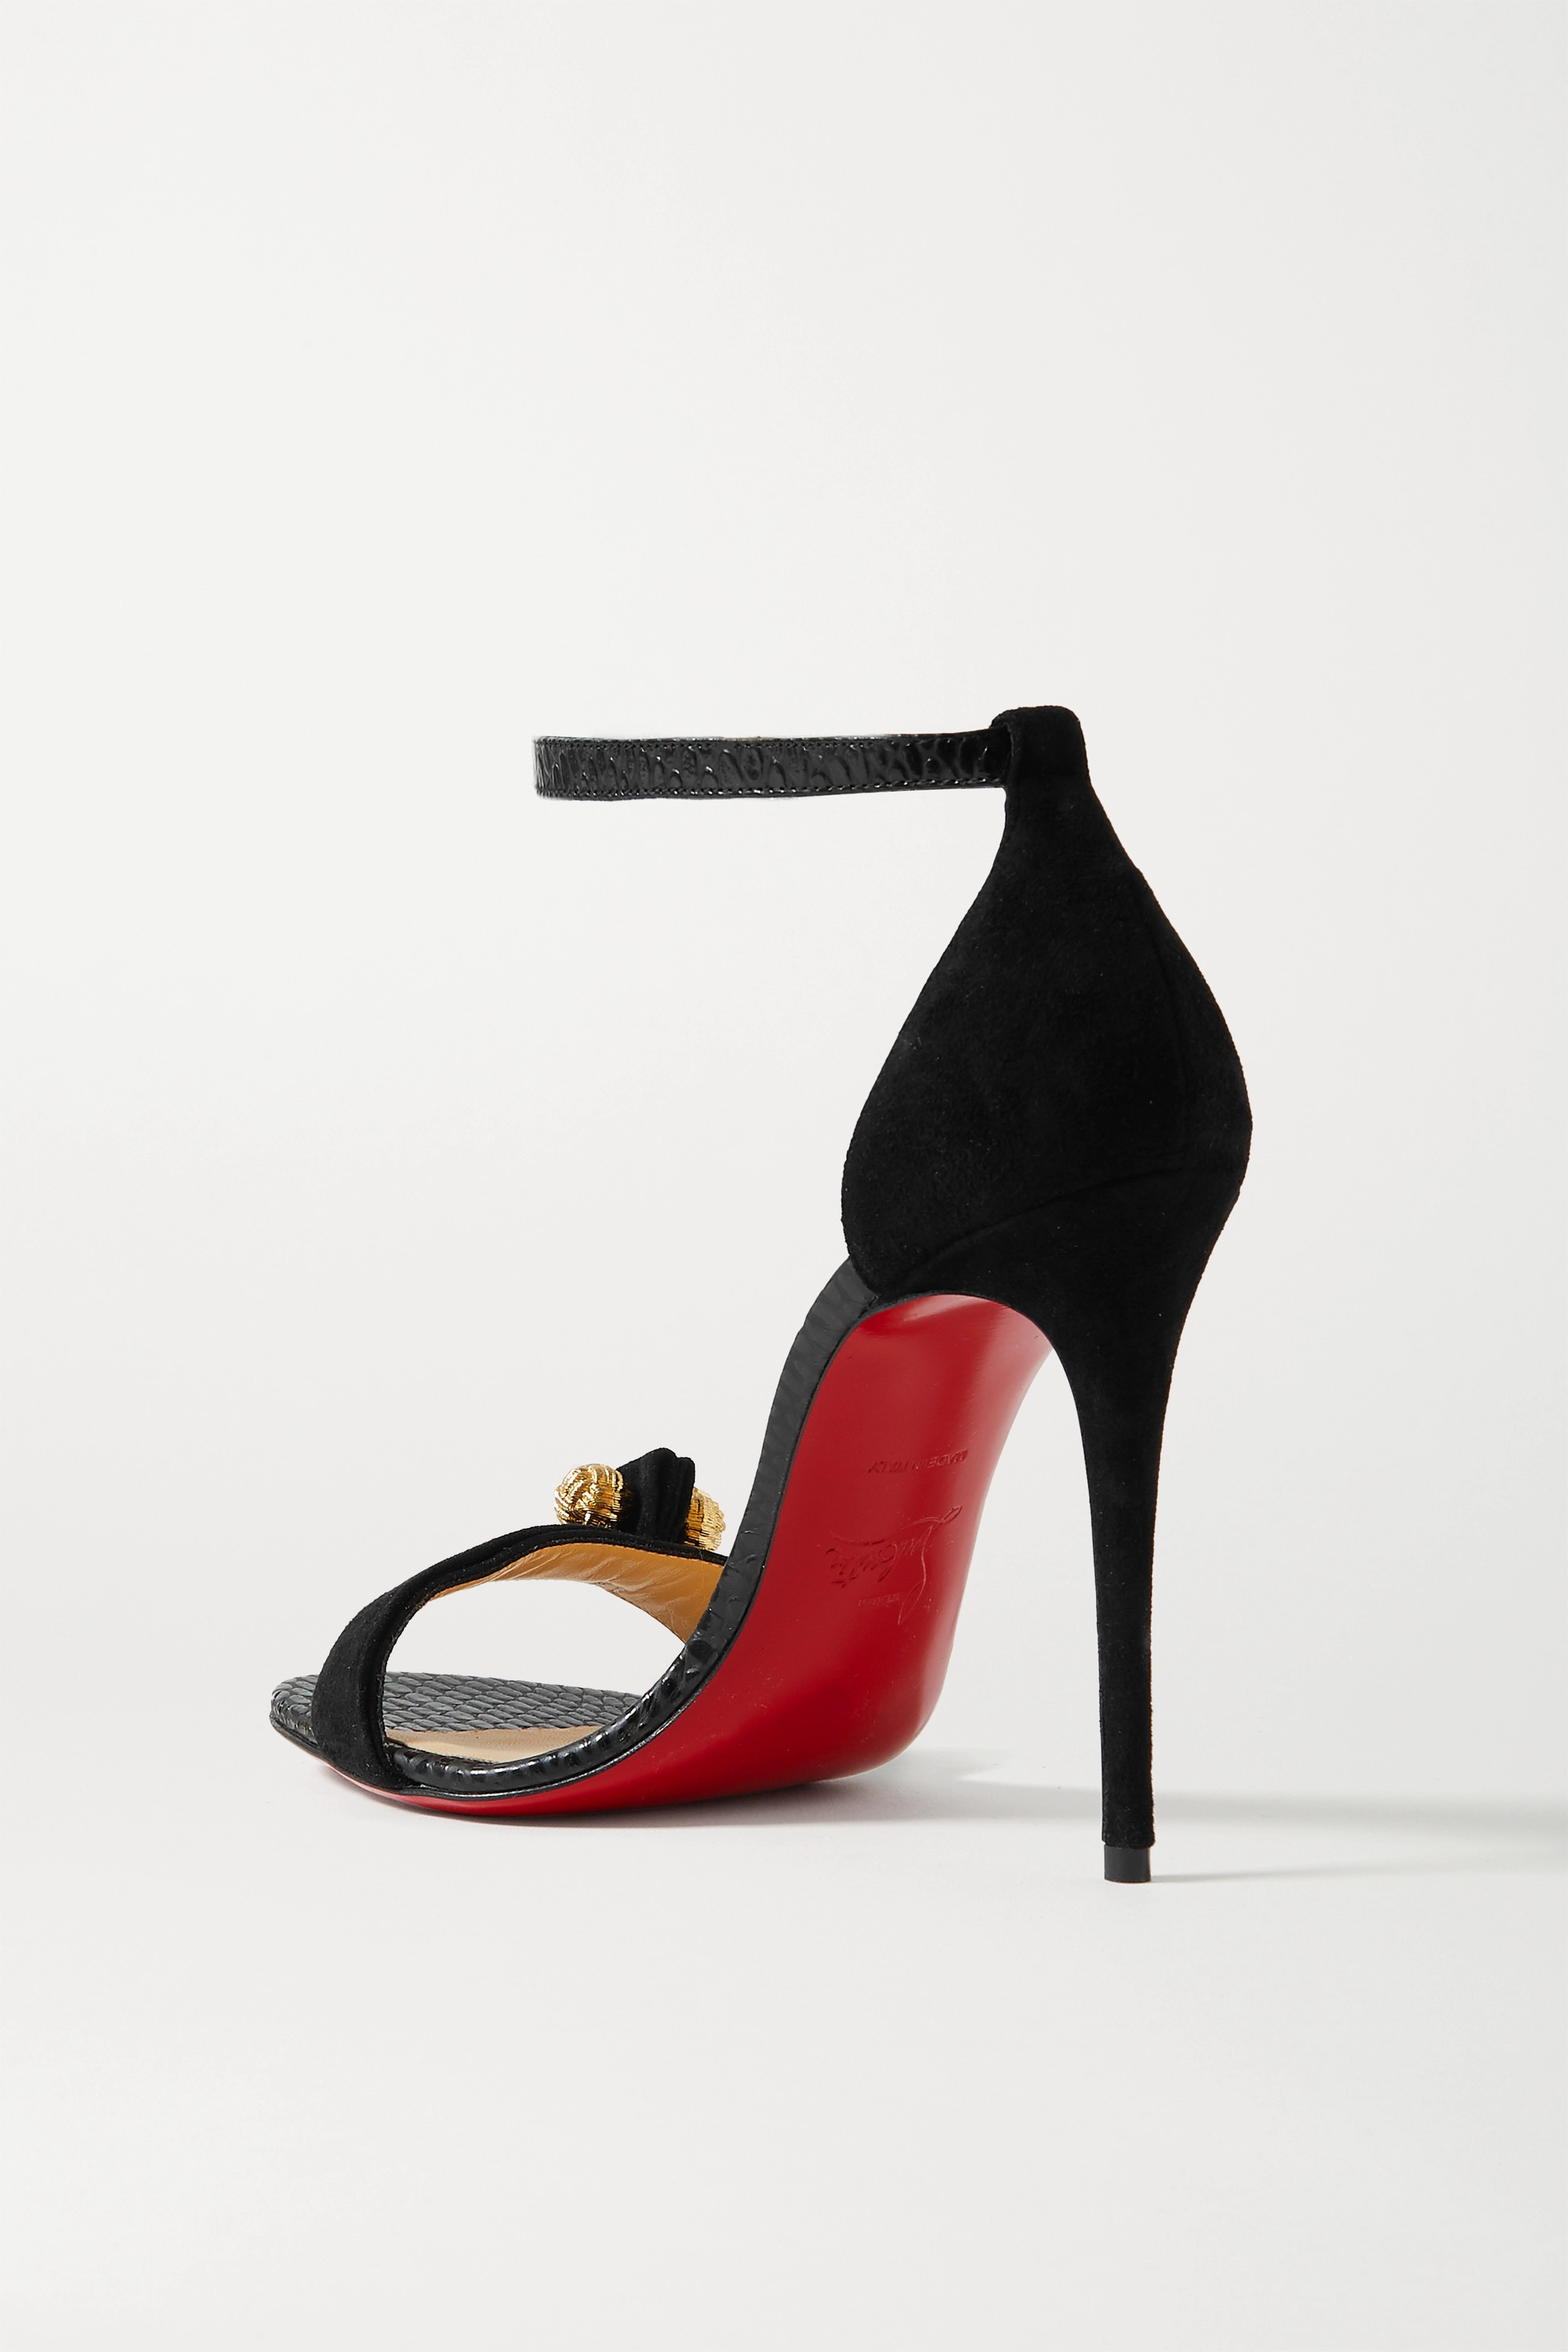 CHRISTIAN LOUBOUTIN Stanisandal 100 suede and lizard-effect leather sandals